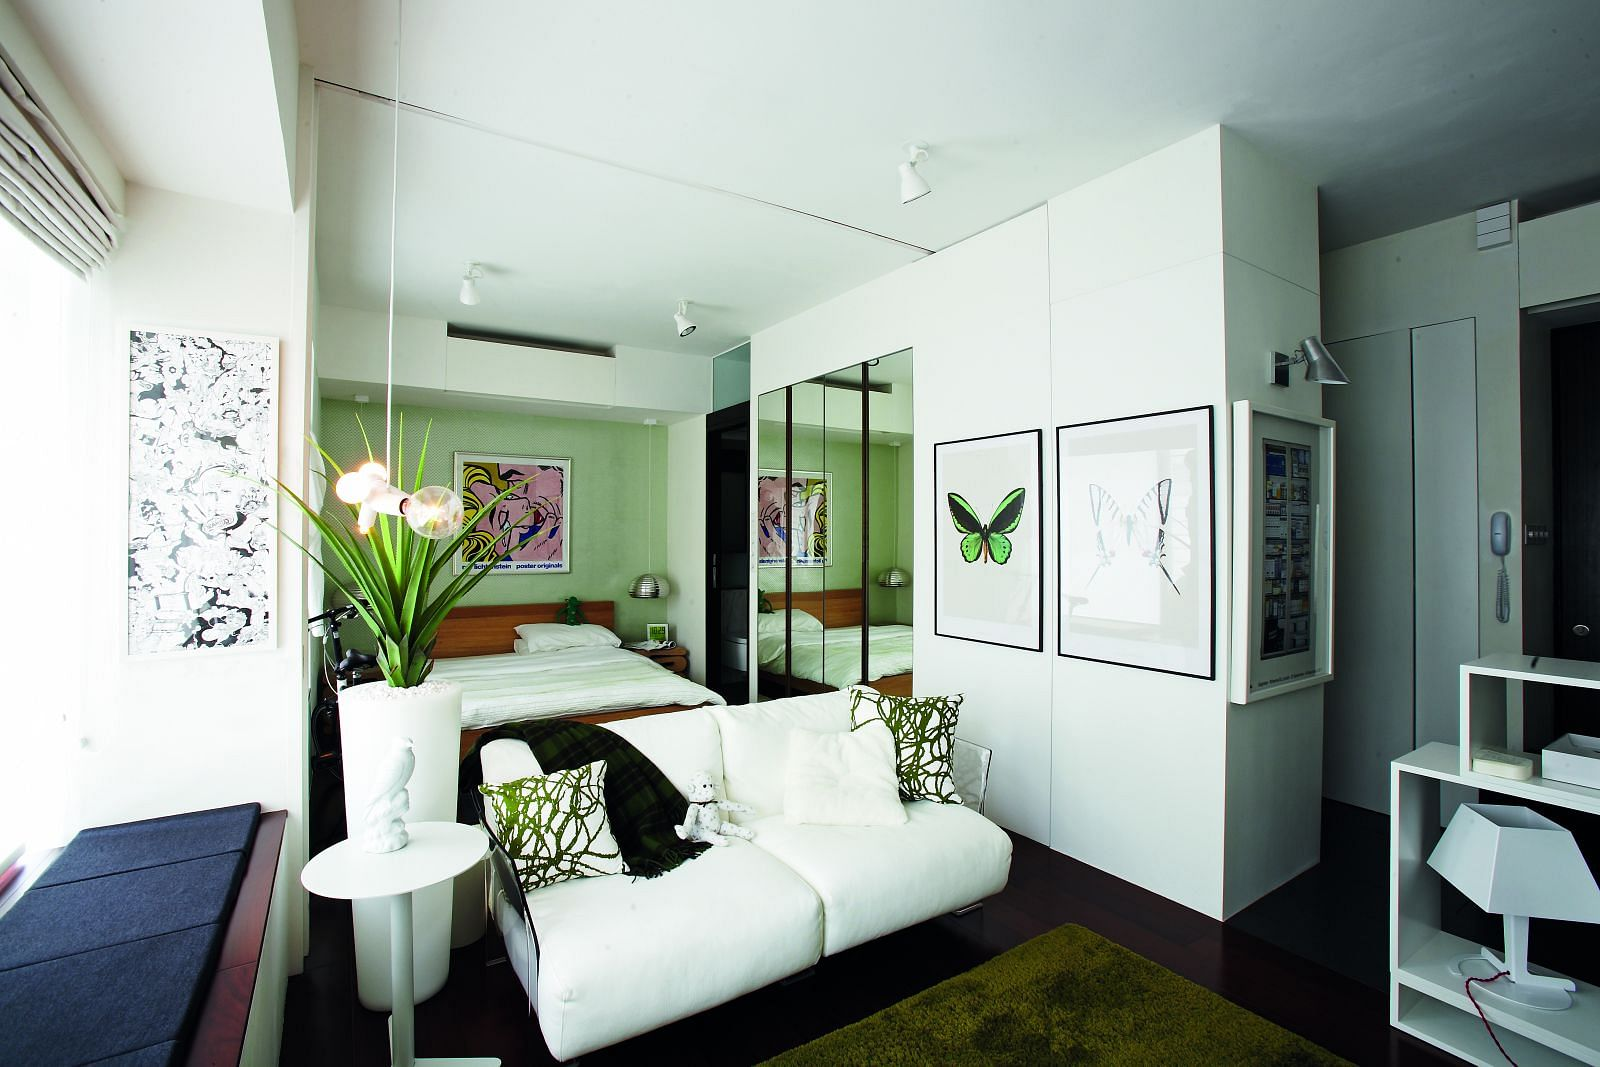 Bedroom White Walls Stylish Homes House Tours